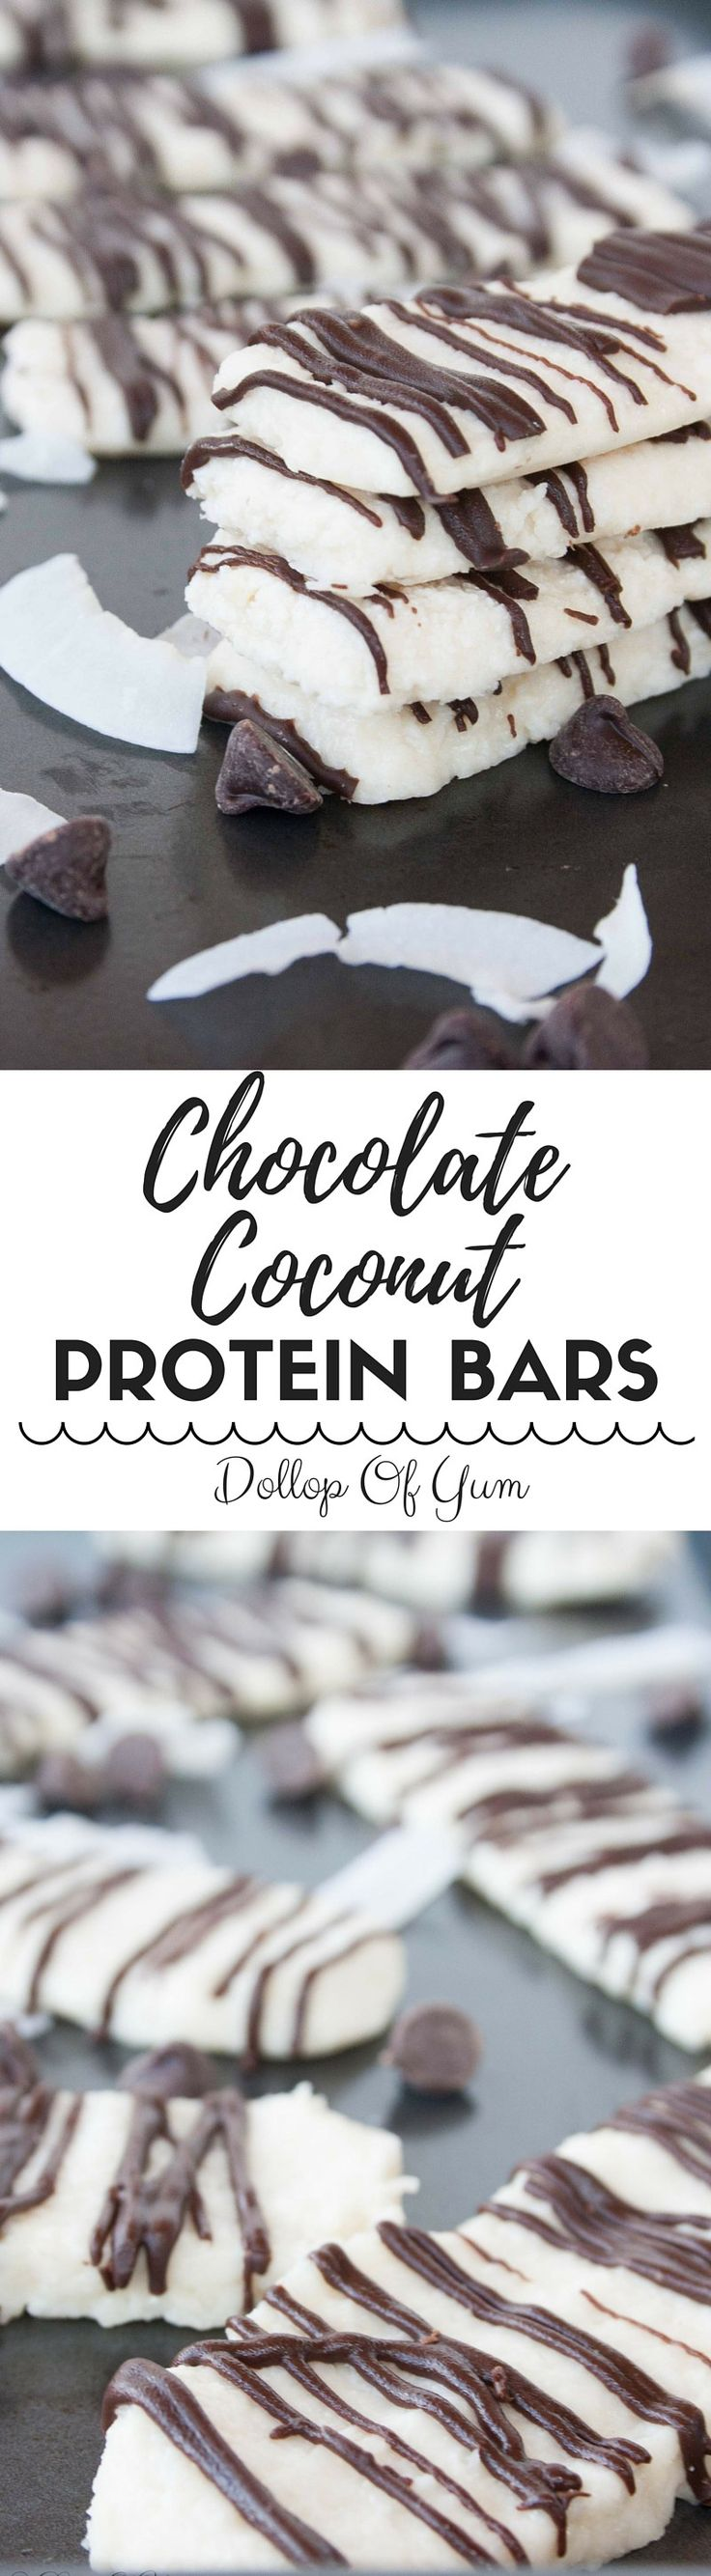 Chocolate Coconut Protein Bars. Super healthy and delicious homemade protein bars that are really easy to make!